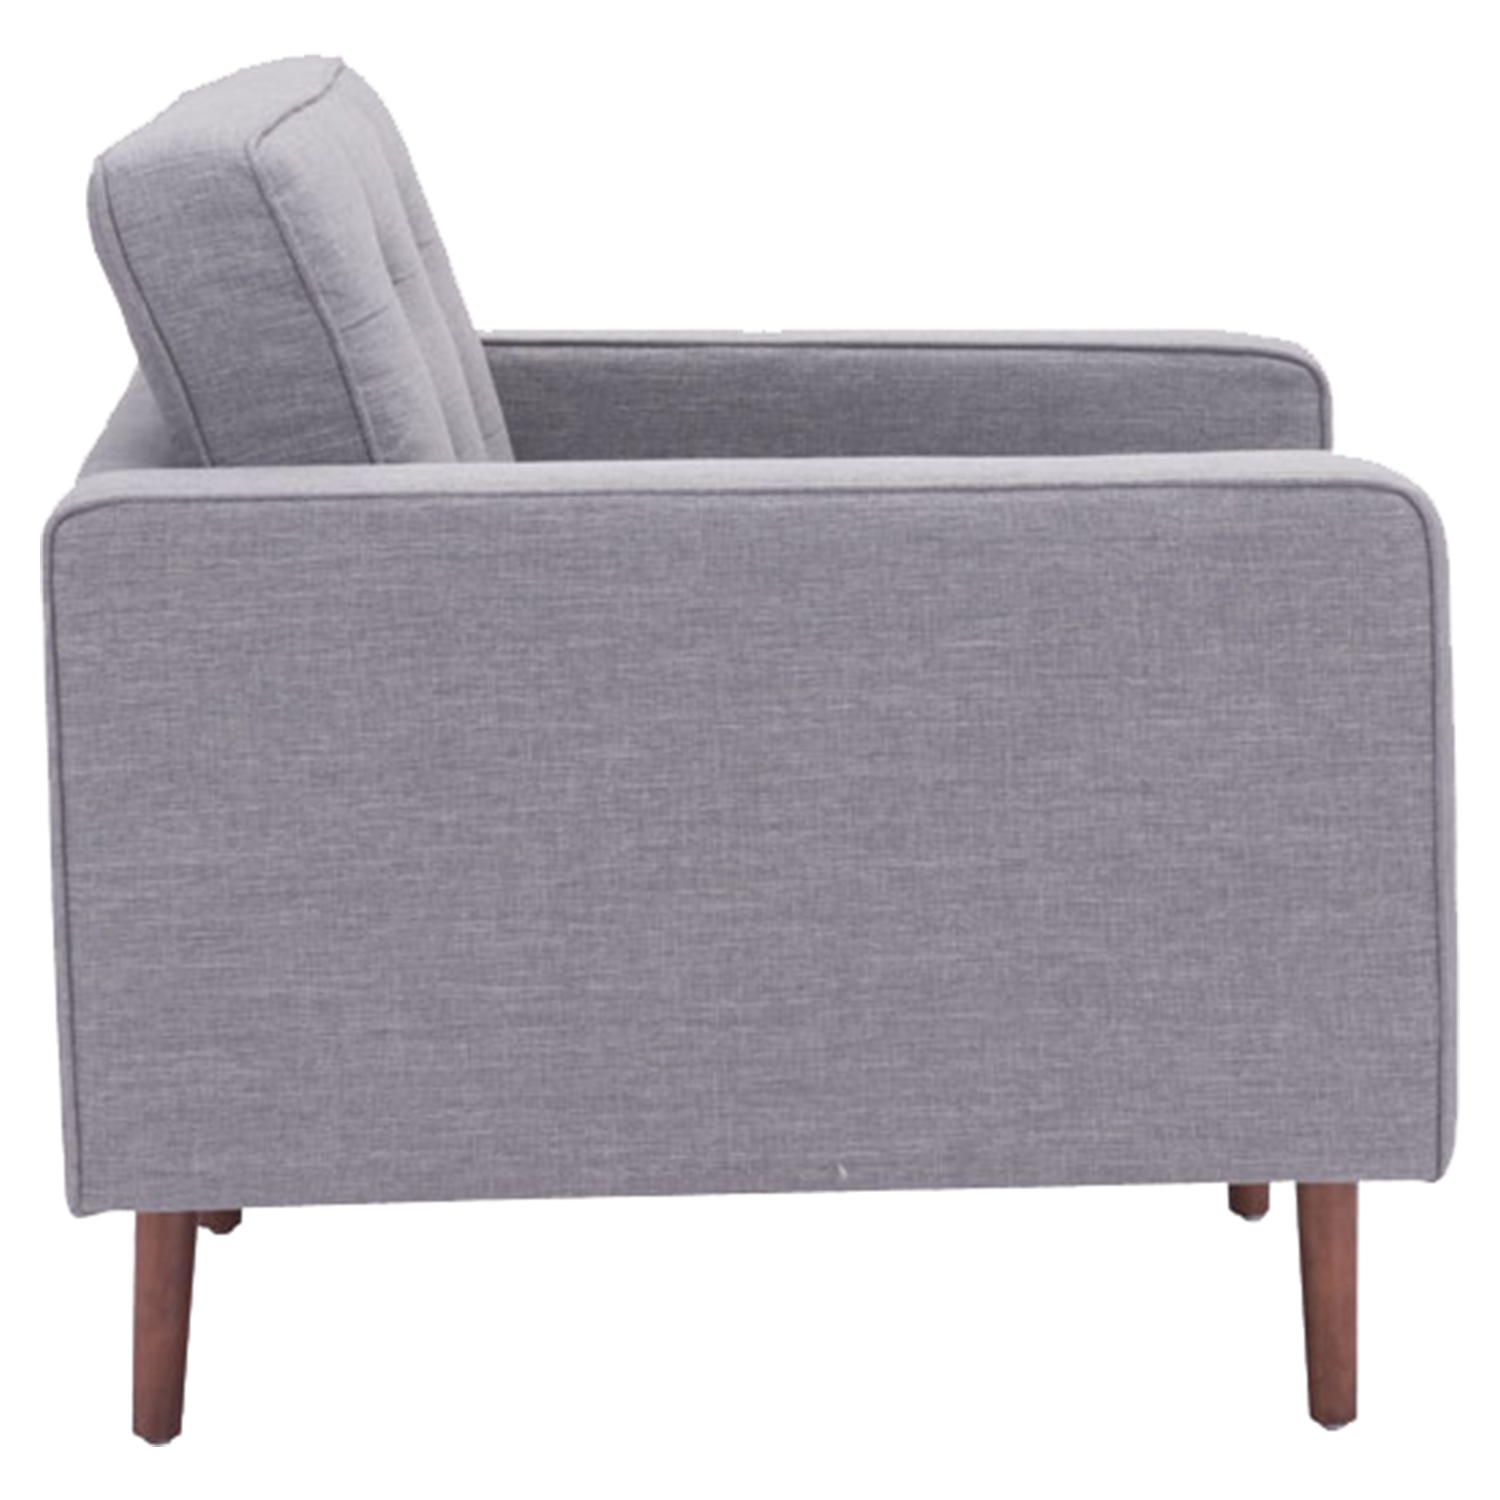 Puget Arm Chair - Tufted, Gray - ZM-100219